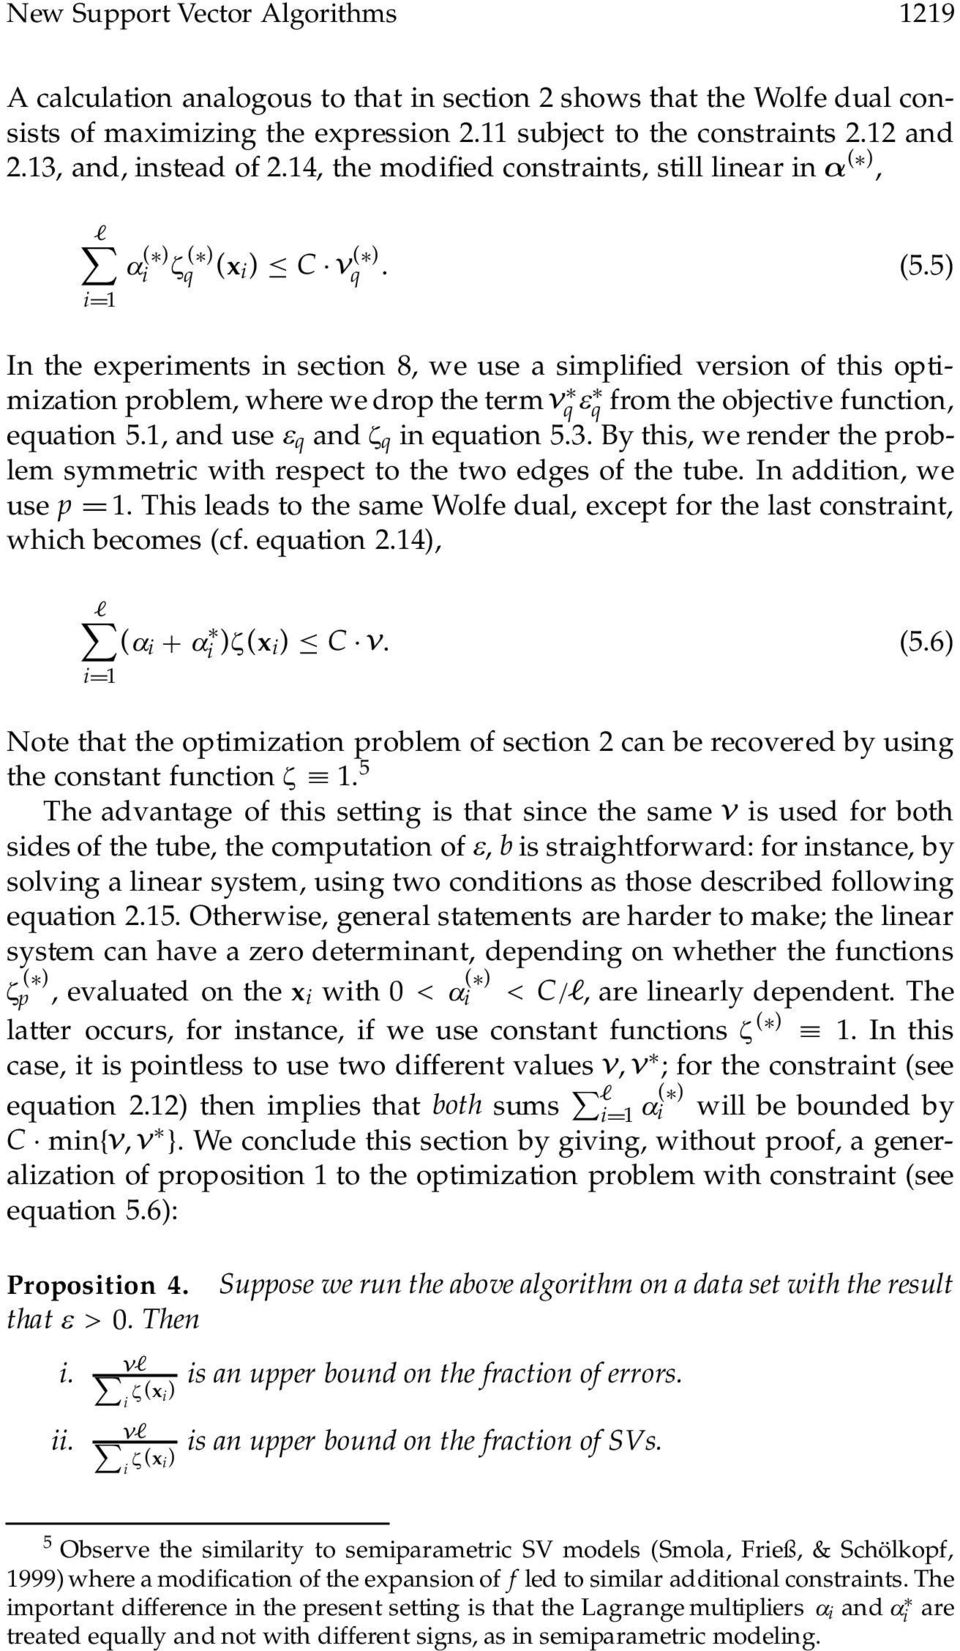 5) In the experiments in section 8, we use a simpli ed version of this optimization problem, where we drop the termº q e q from the objective function, equation 5.1, and use e q and f q in equation 5.